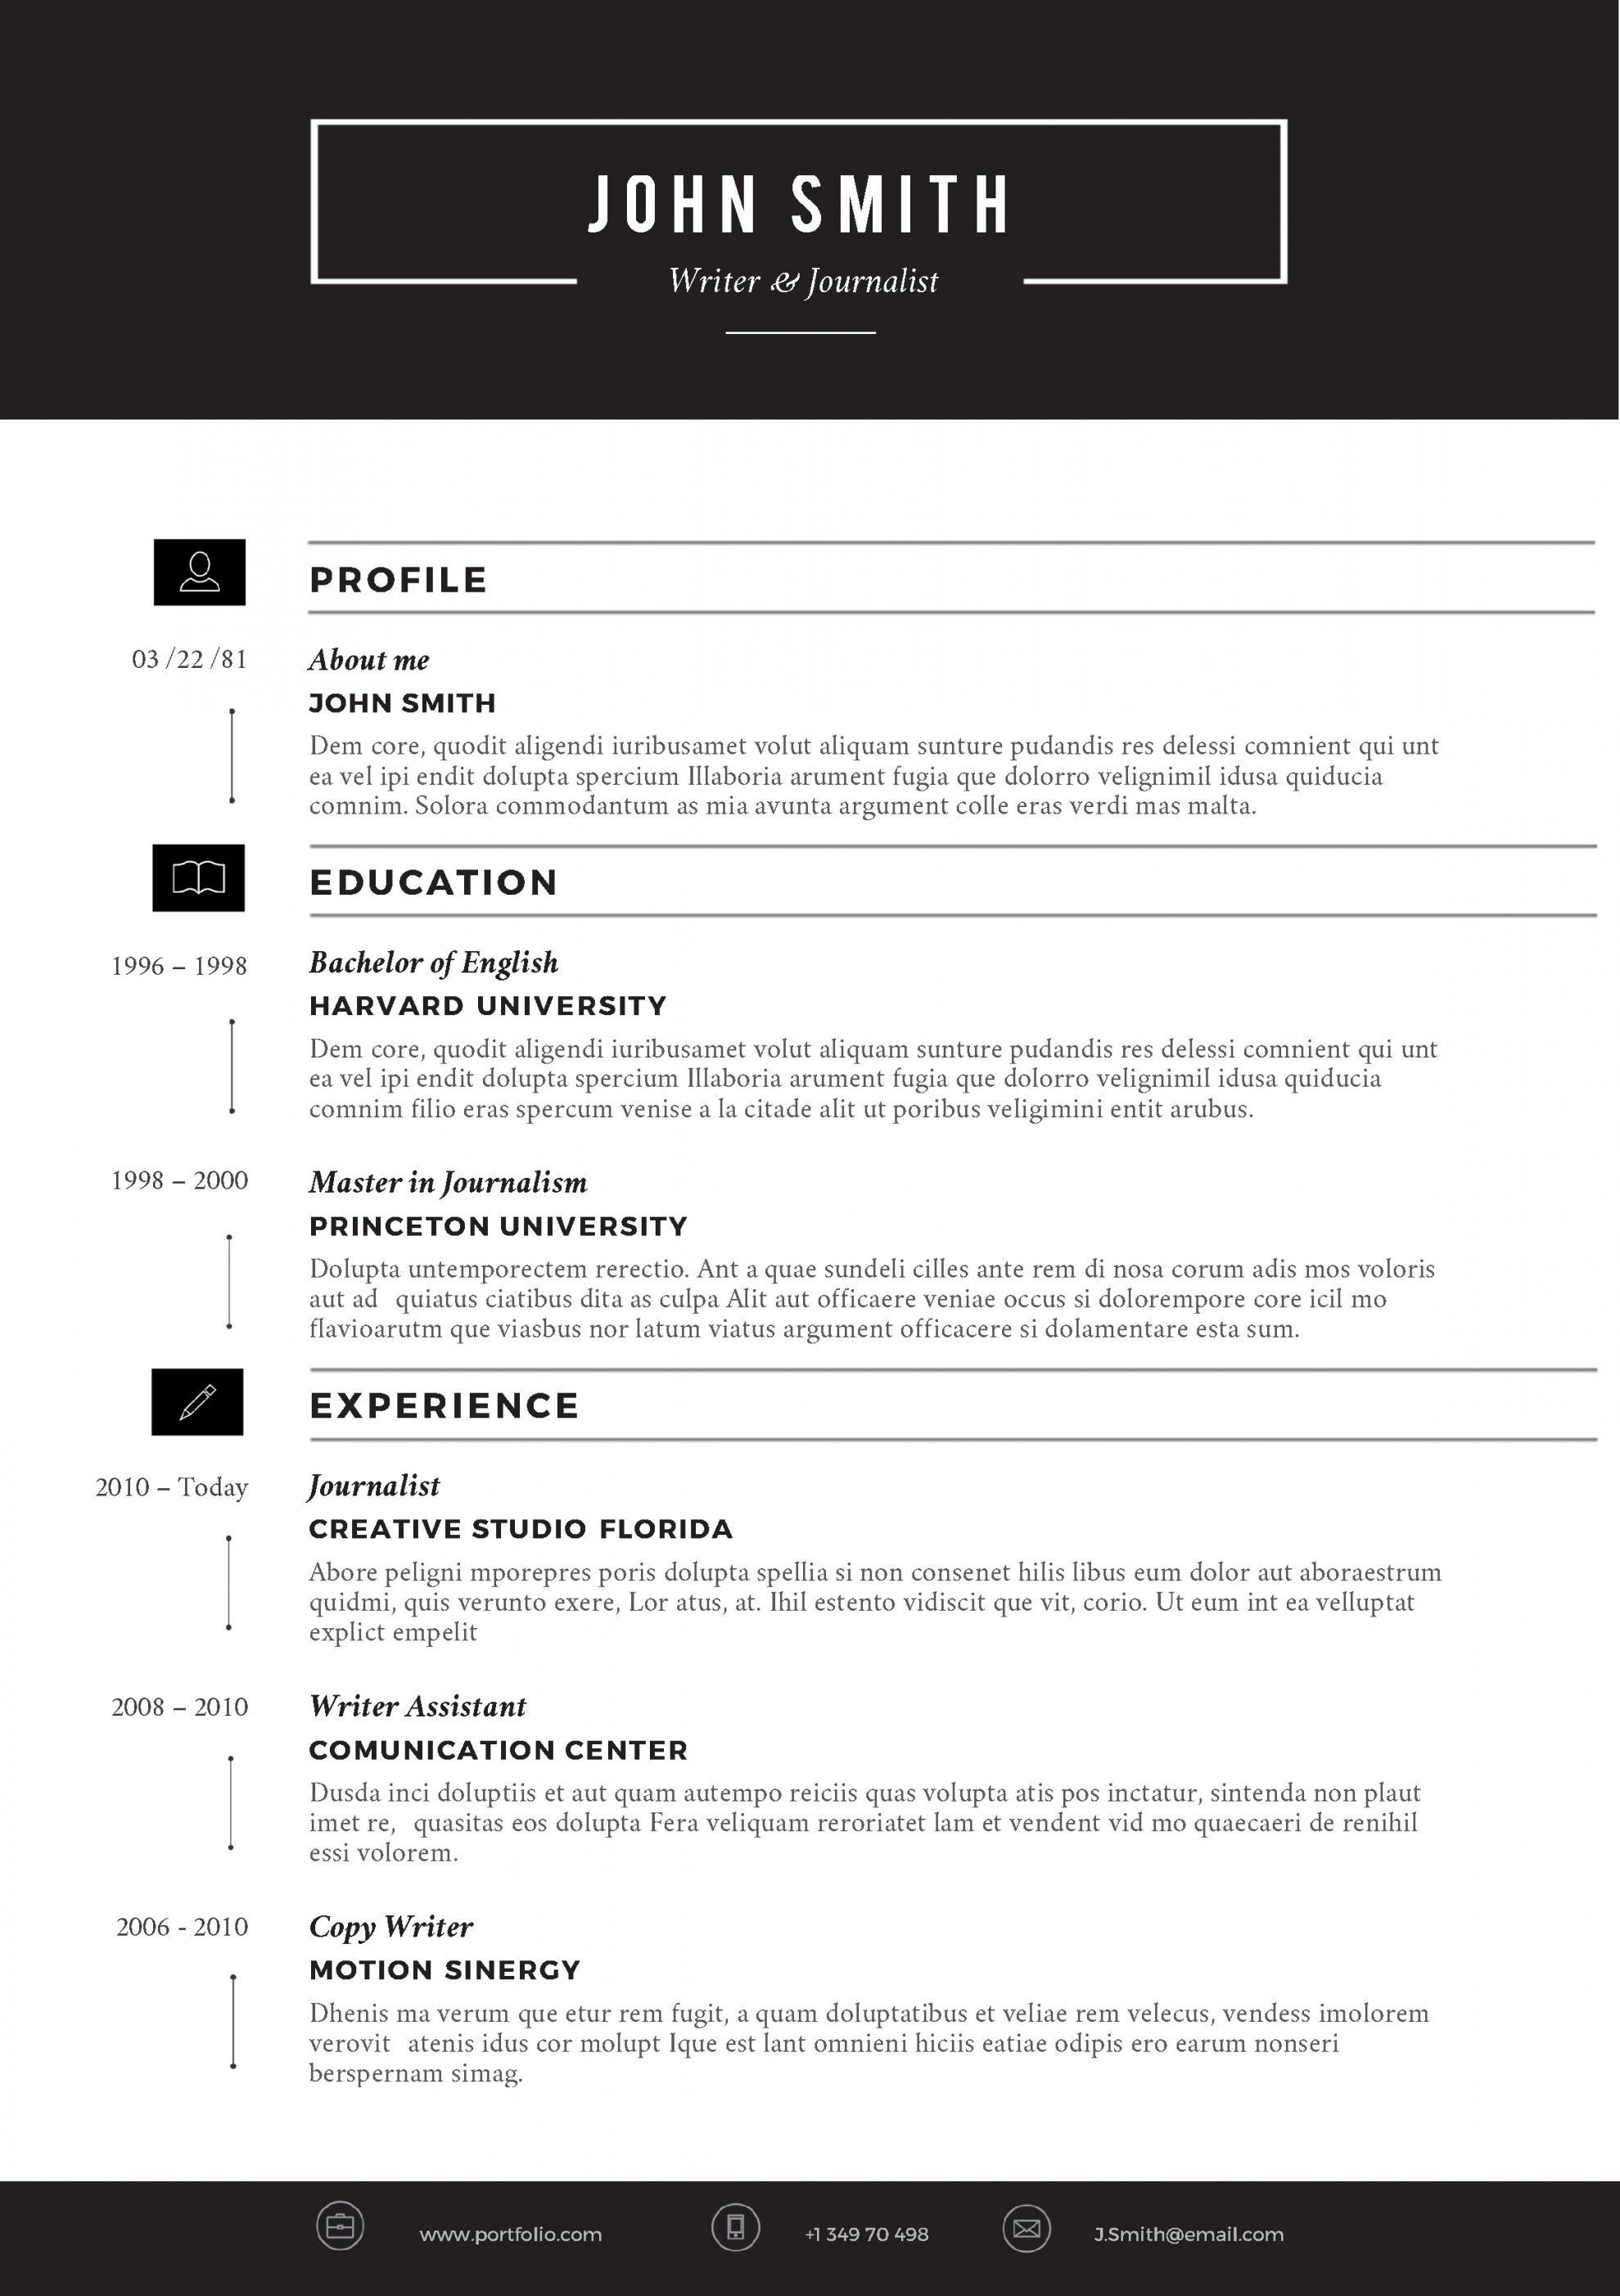 resume template open office writer Collection-Open fice Resume Templates Free Download Valid Resume Template Sample Cover Letter Download Word Open Fice With 12-h